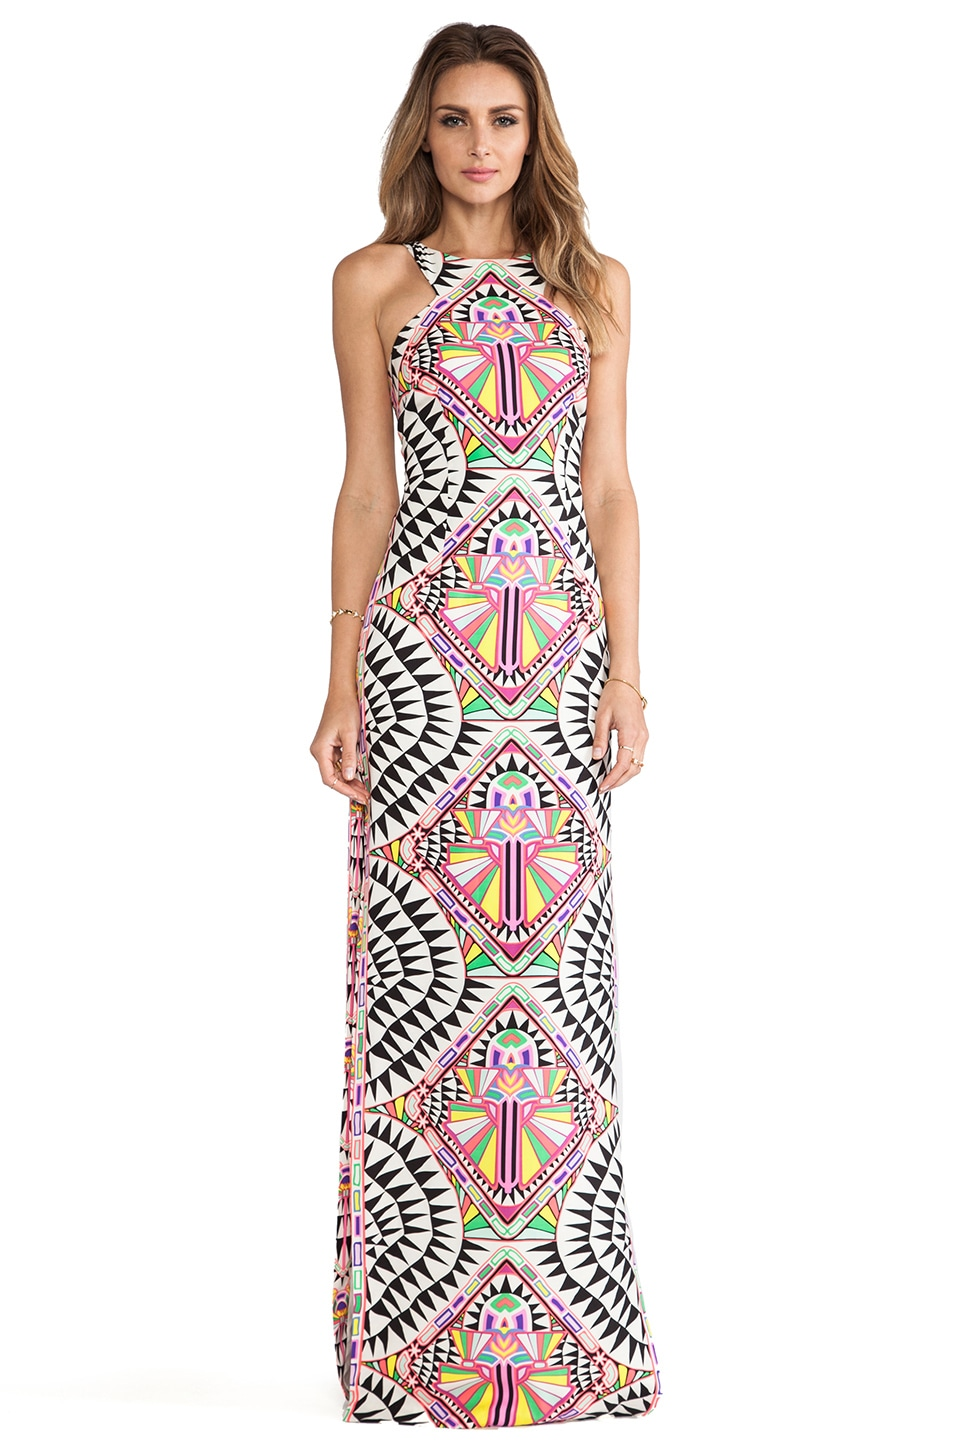 Mara Hoffman High Neck Column Dress in Cosmic Fountain Black